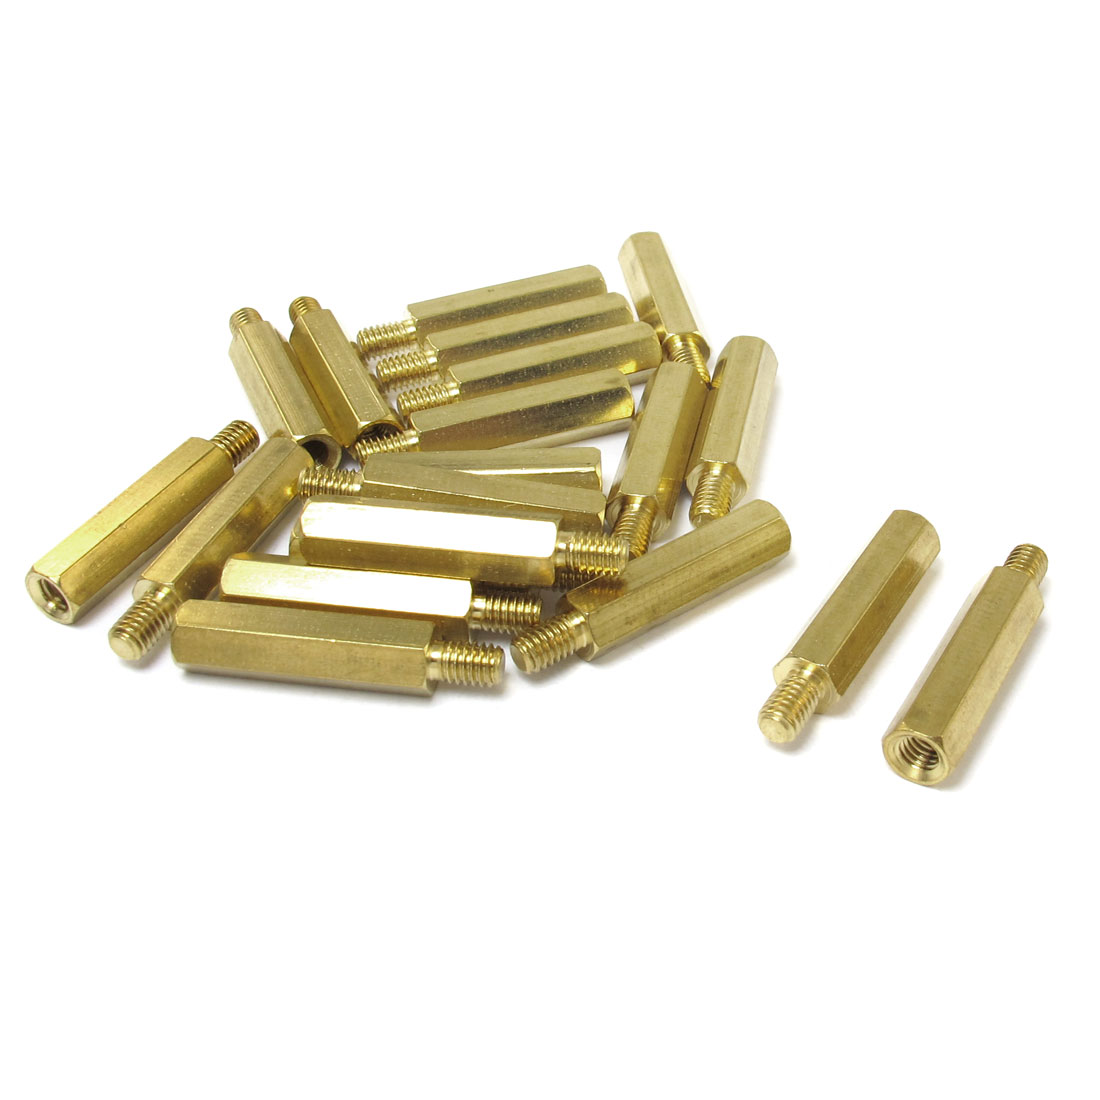 20 Pcs Gold Tone Male Female Hexagonal PCB Standoff Spacers M4x23mmx29mm